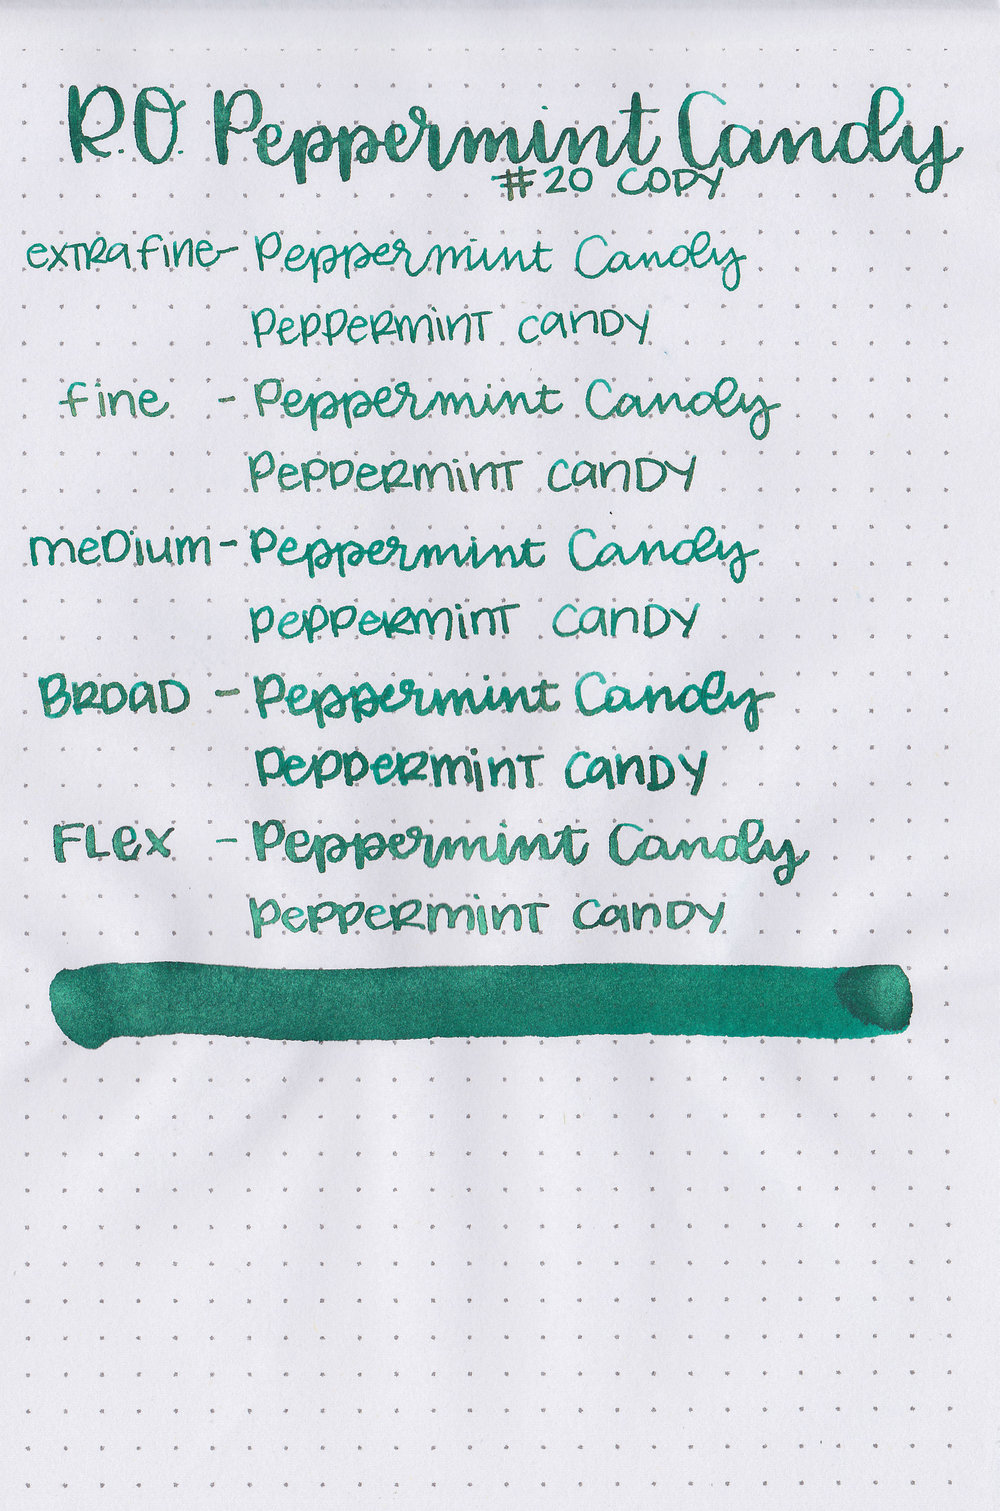 ro-peppermint-candy-11.jpg